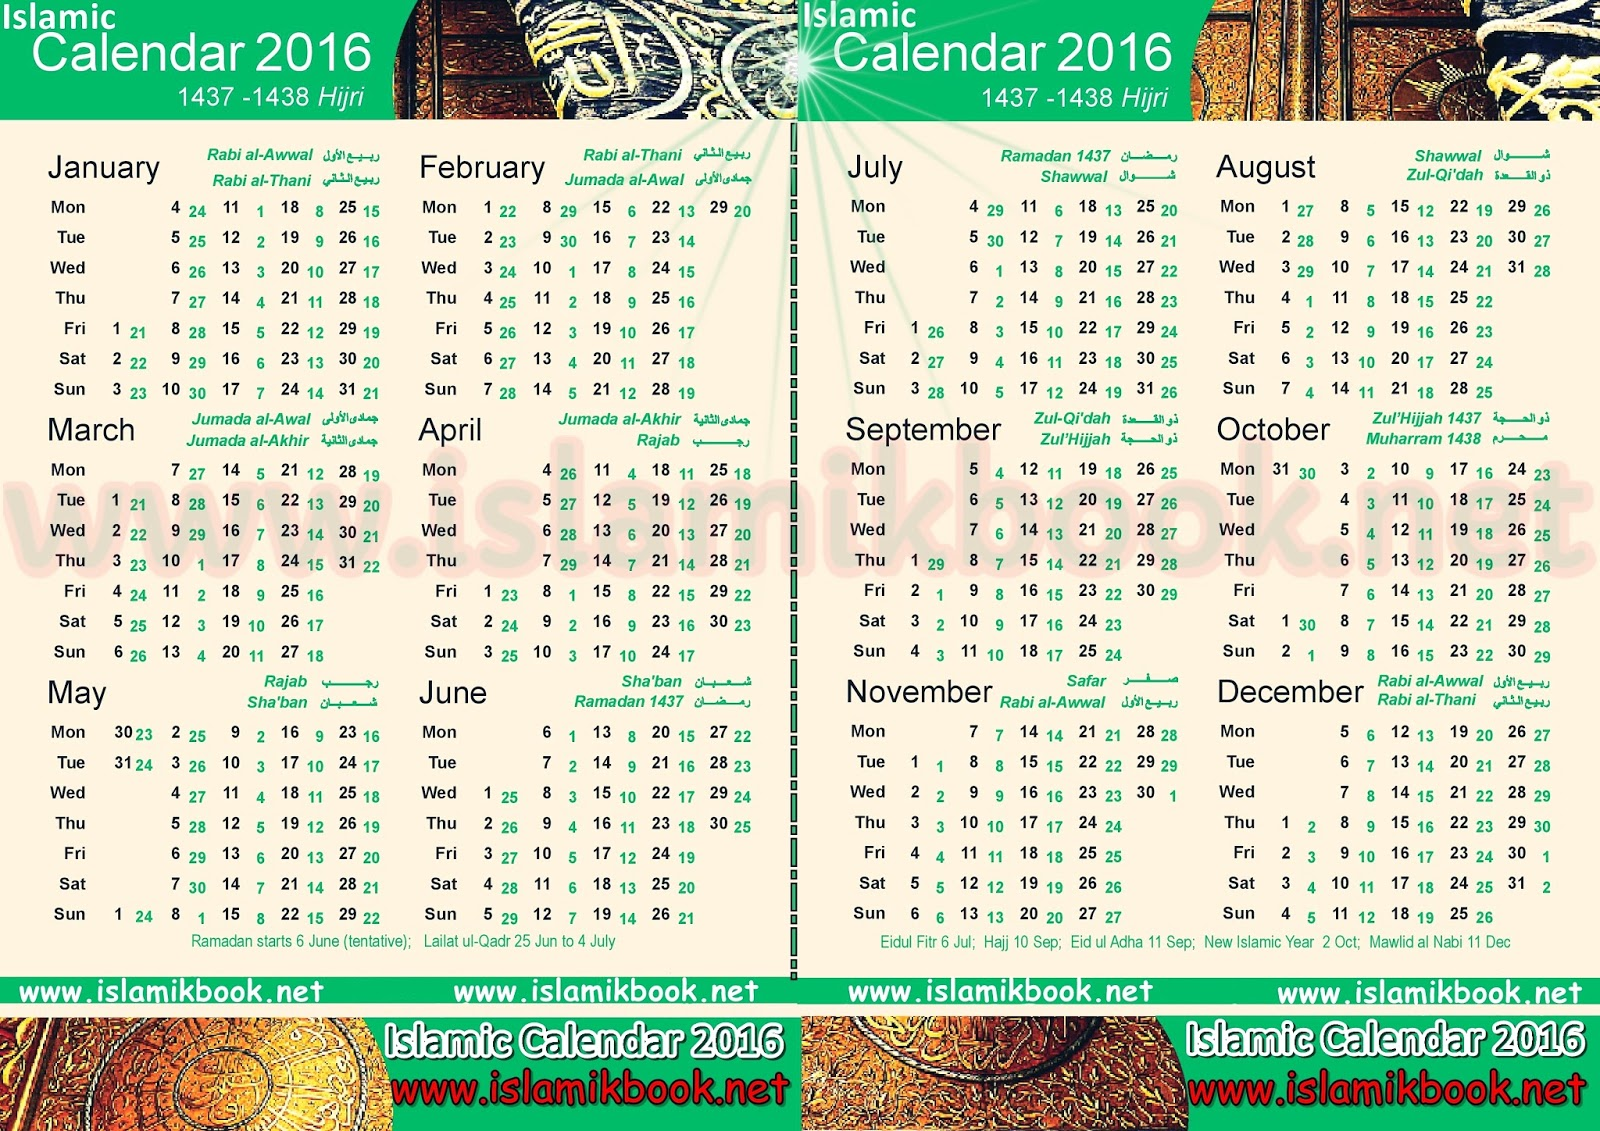 Islamic Calendar 2016 PDF & Image Free Download | Islamic Book